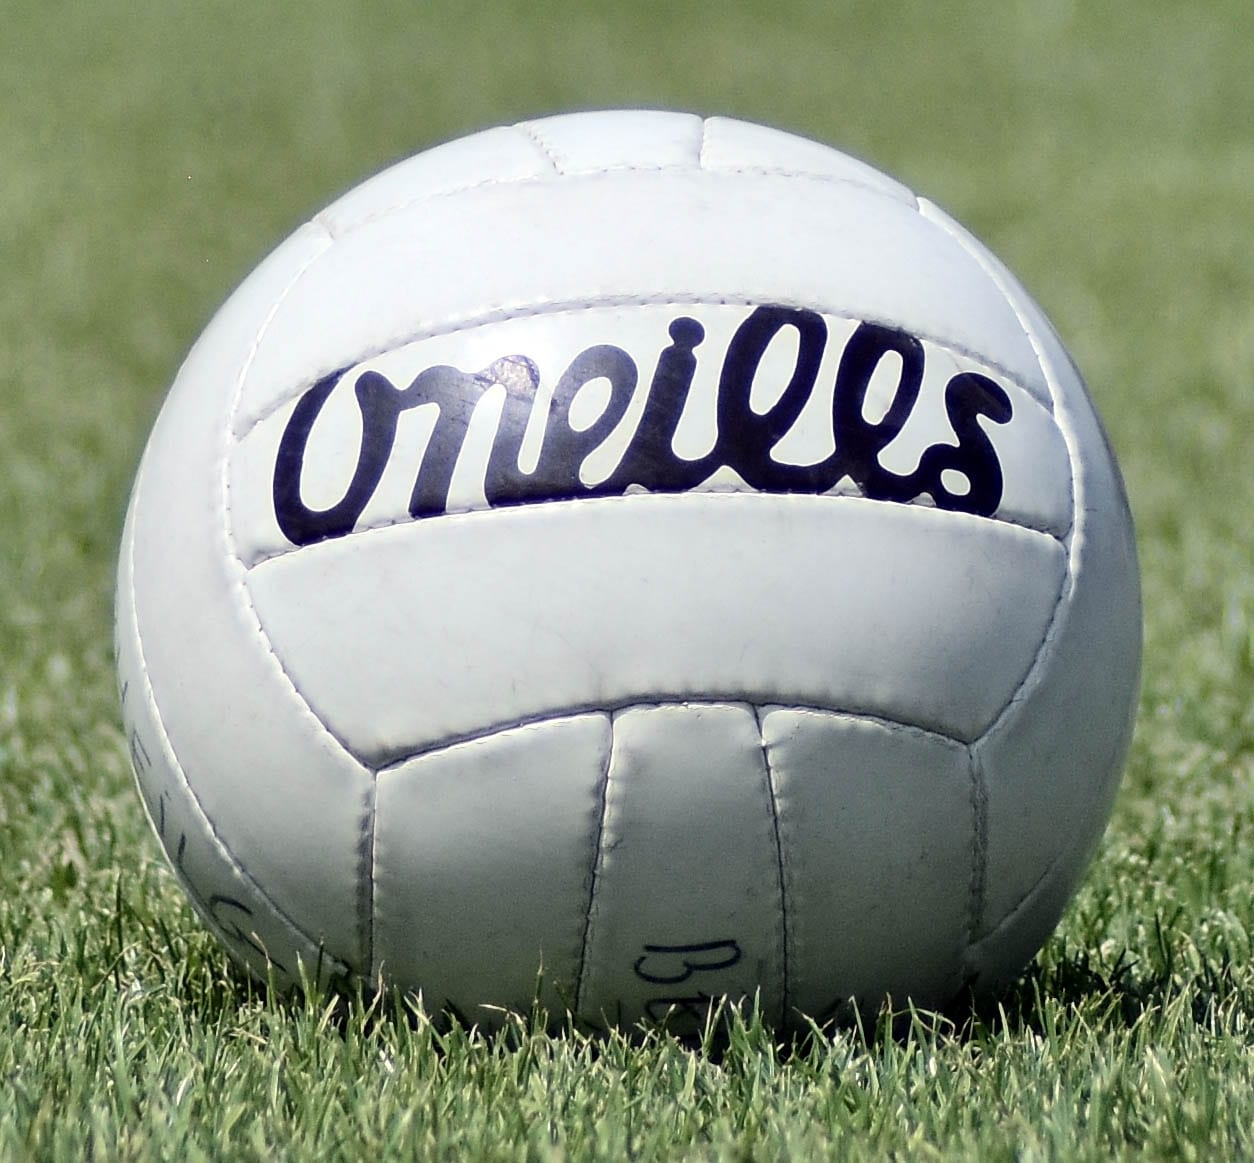 Two all-weather pitches in the works at Clifden GAA club